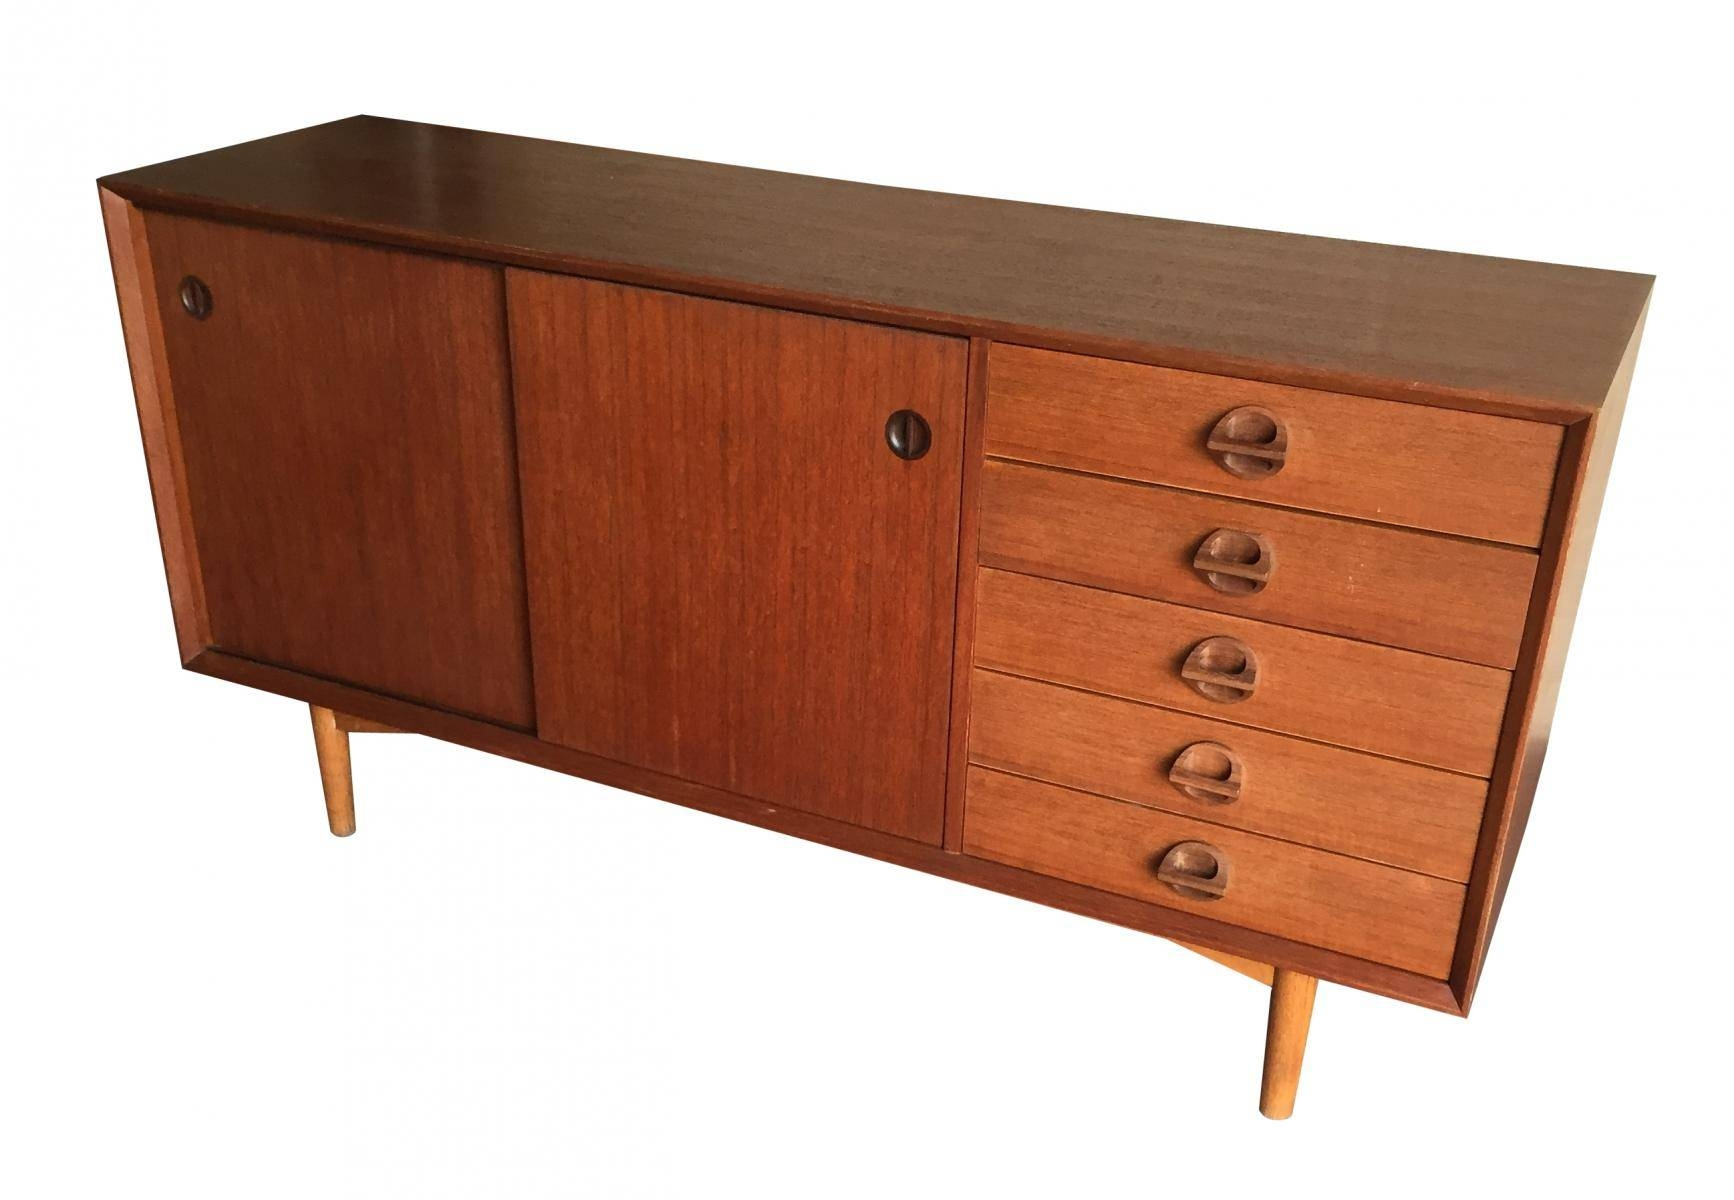 Vintage Sideboard With Sliding Doors, 1960s For Sale At Pamono For 50 Inch Sideboards (View 15 of 15)